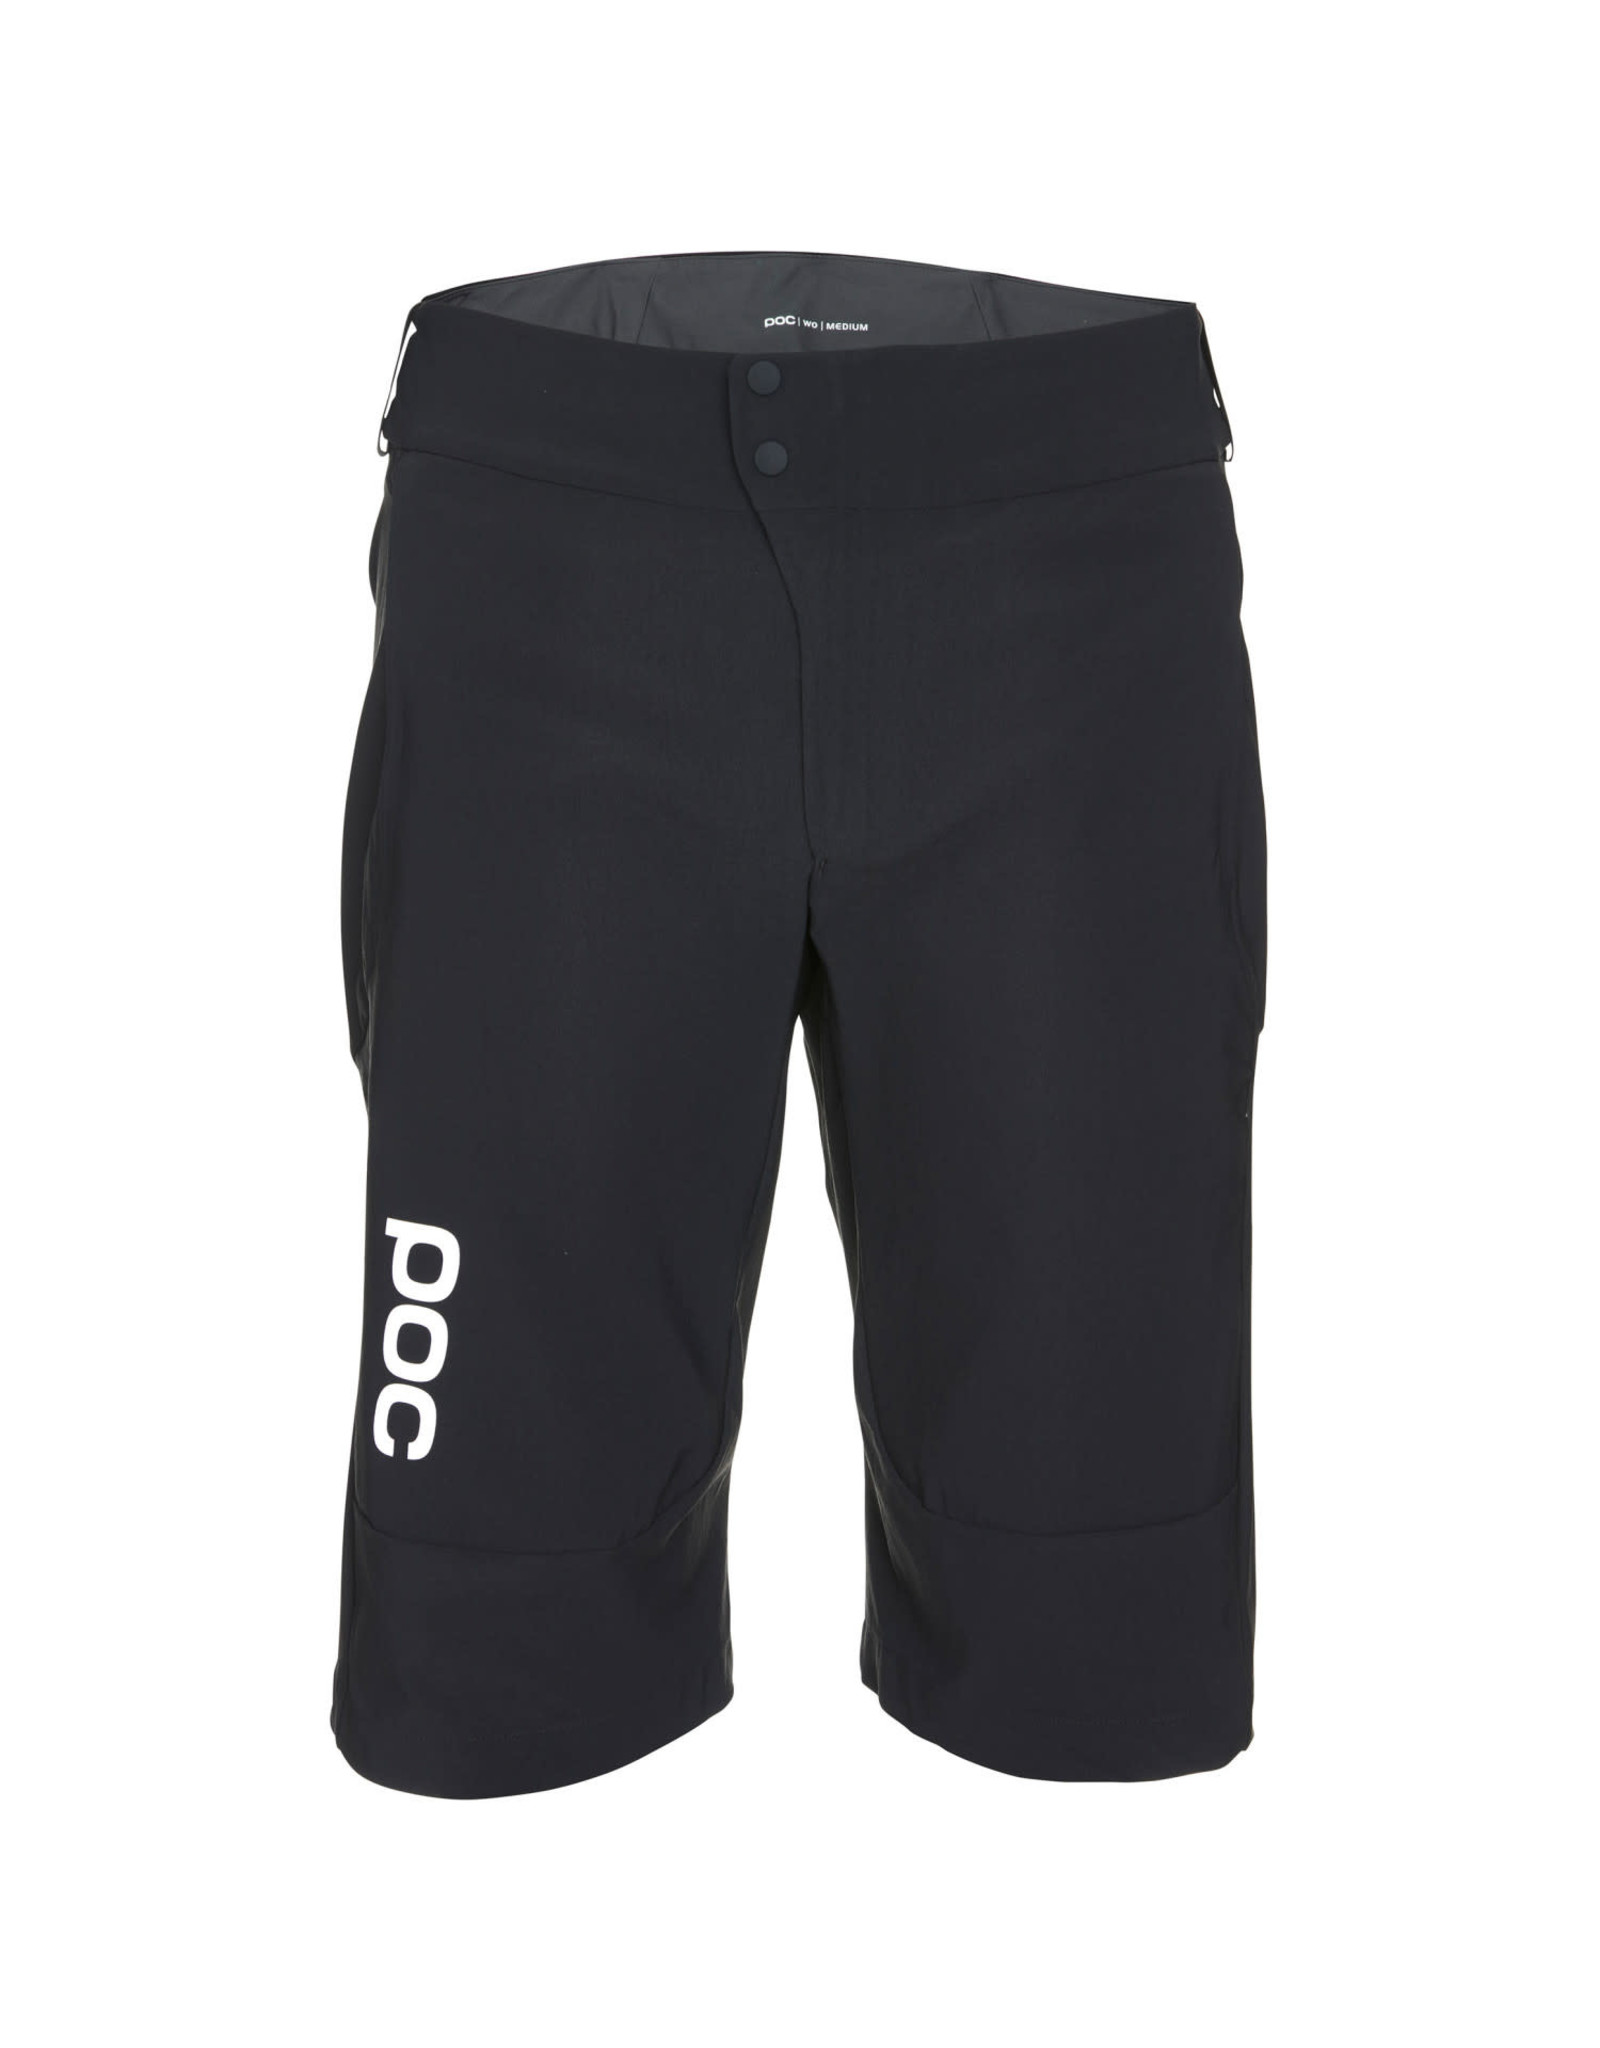 POC '20, POC, Essential Enduro Shorts, Men's